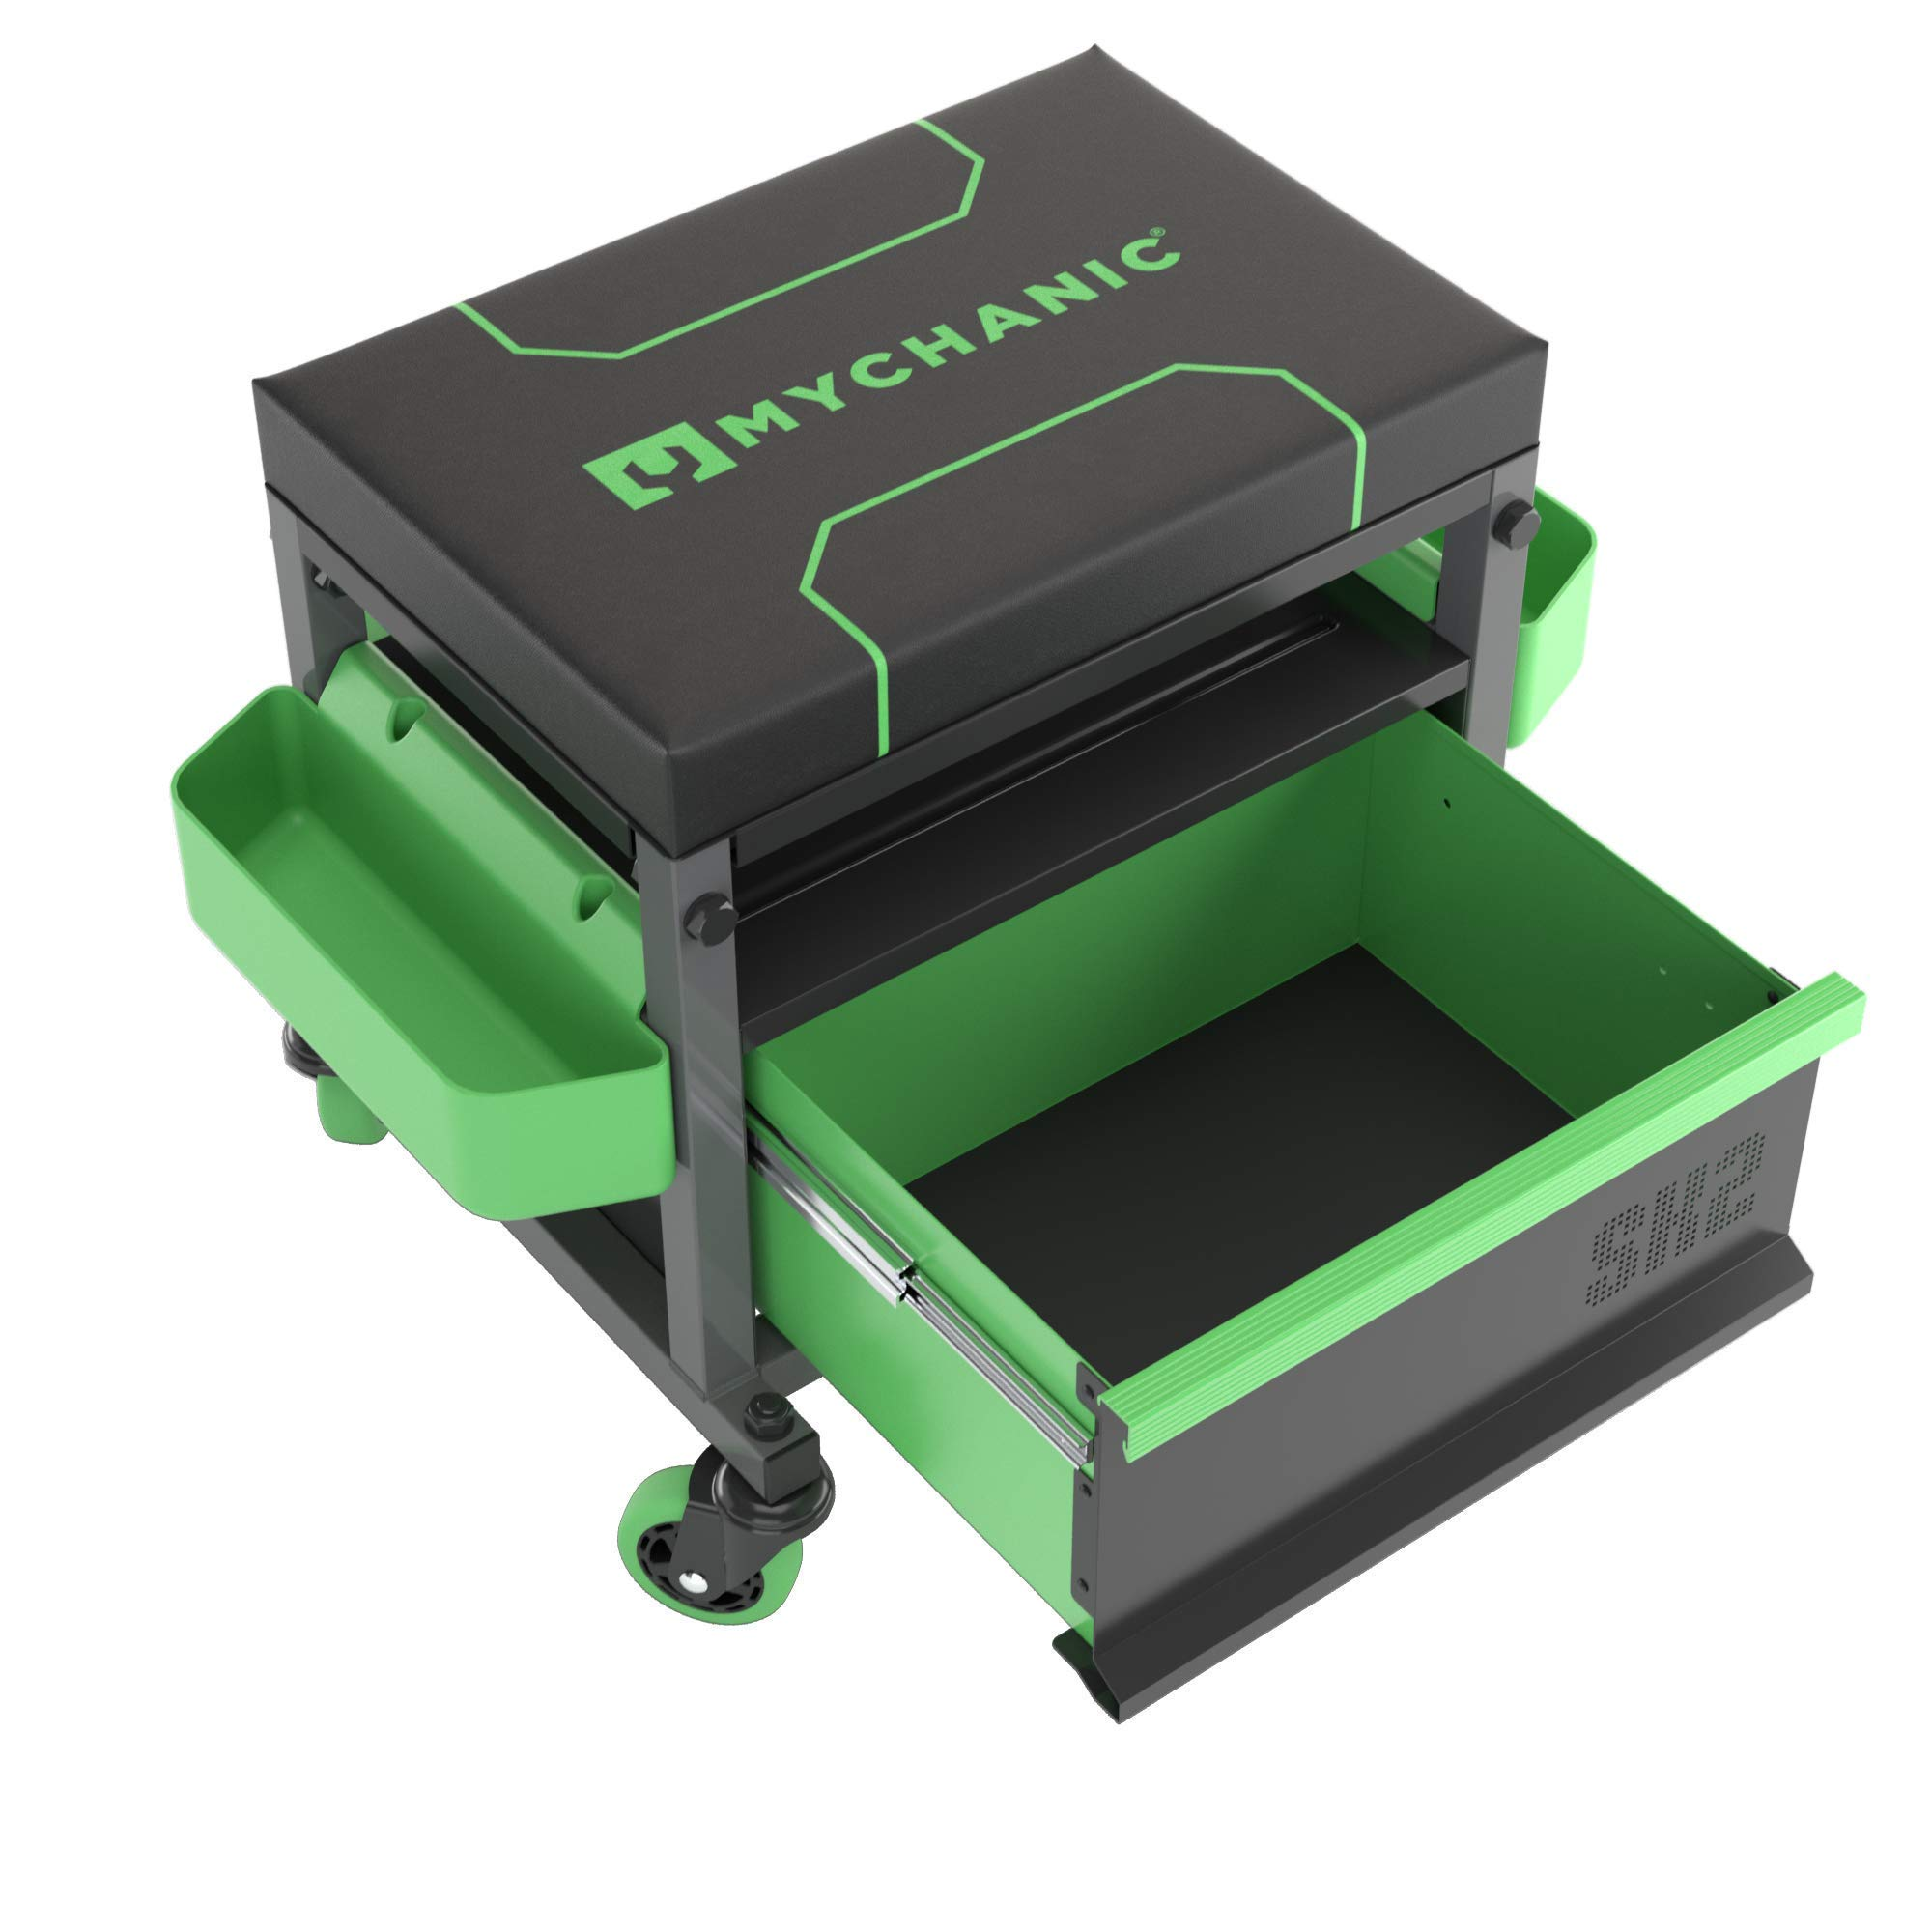 MYCHANIC Sidekick Rolling Mechanic Stool - 500 Lb Capacity Garage Toolbox Stool - Adjustable Height Mechanic Creeper Seat - Large Drawer, 3-Inch Casters and Tool Caddy - Powder Coated Steel Frame by MYCHANIC